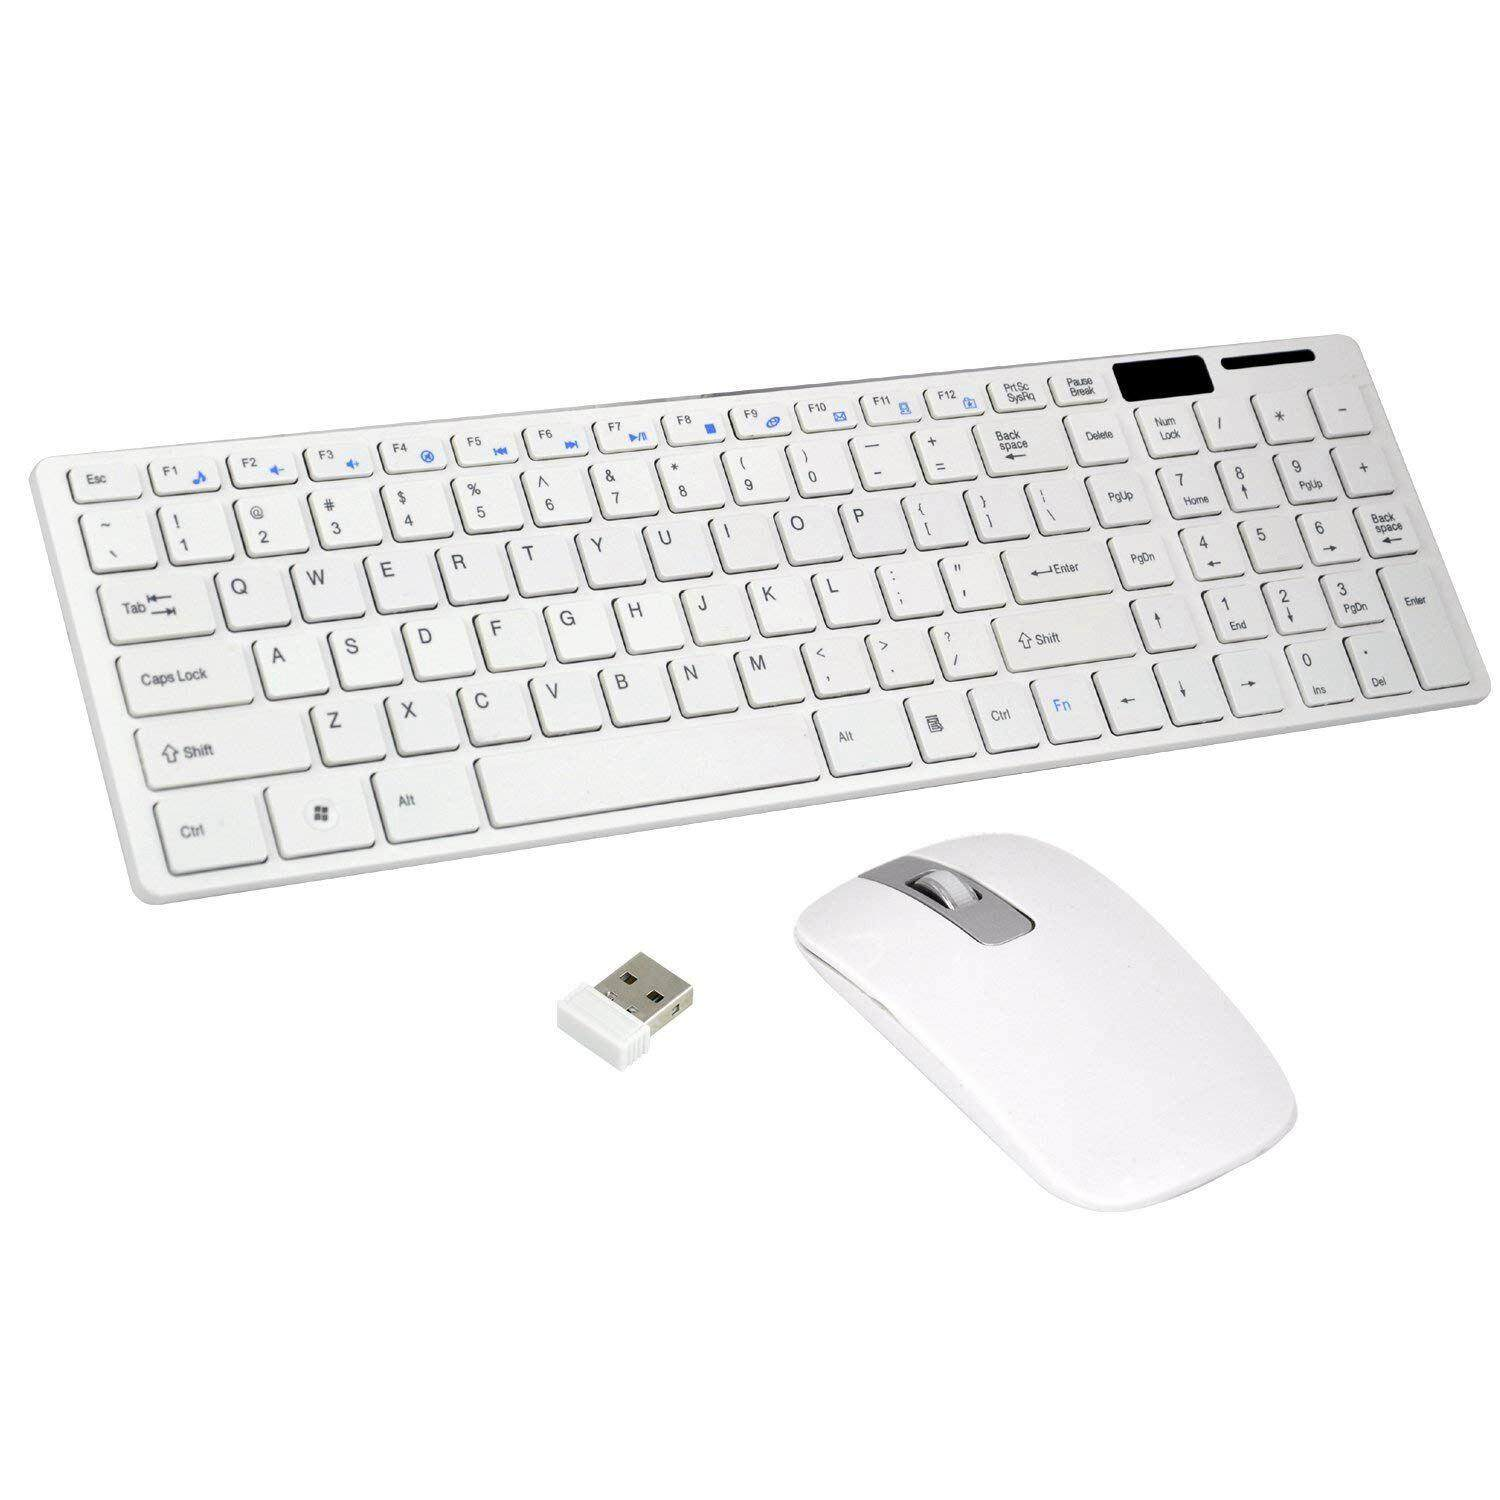 Wireless Slim White Keyboard + Wireless Optical Mouse Set for PC and Laptop Malaysia